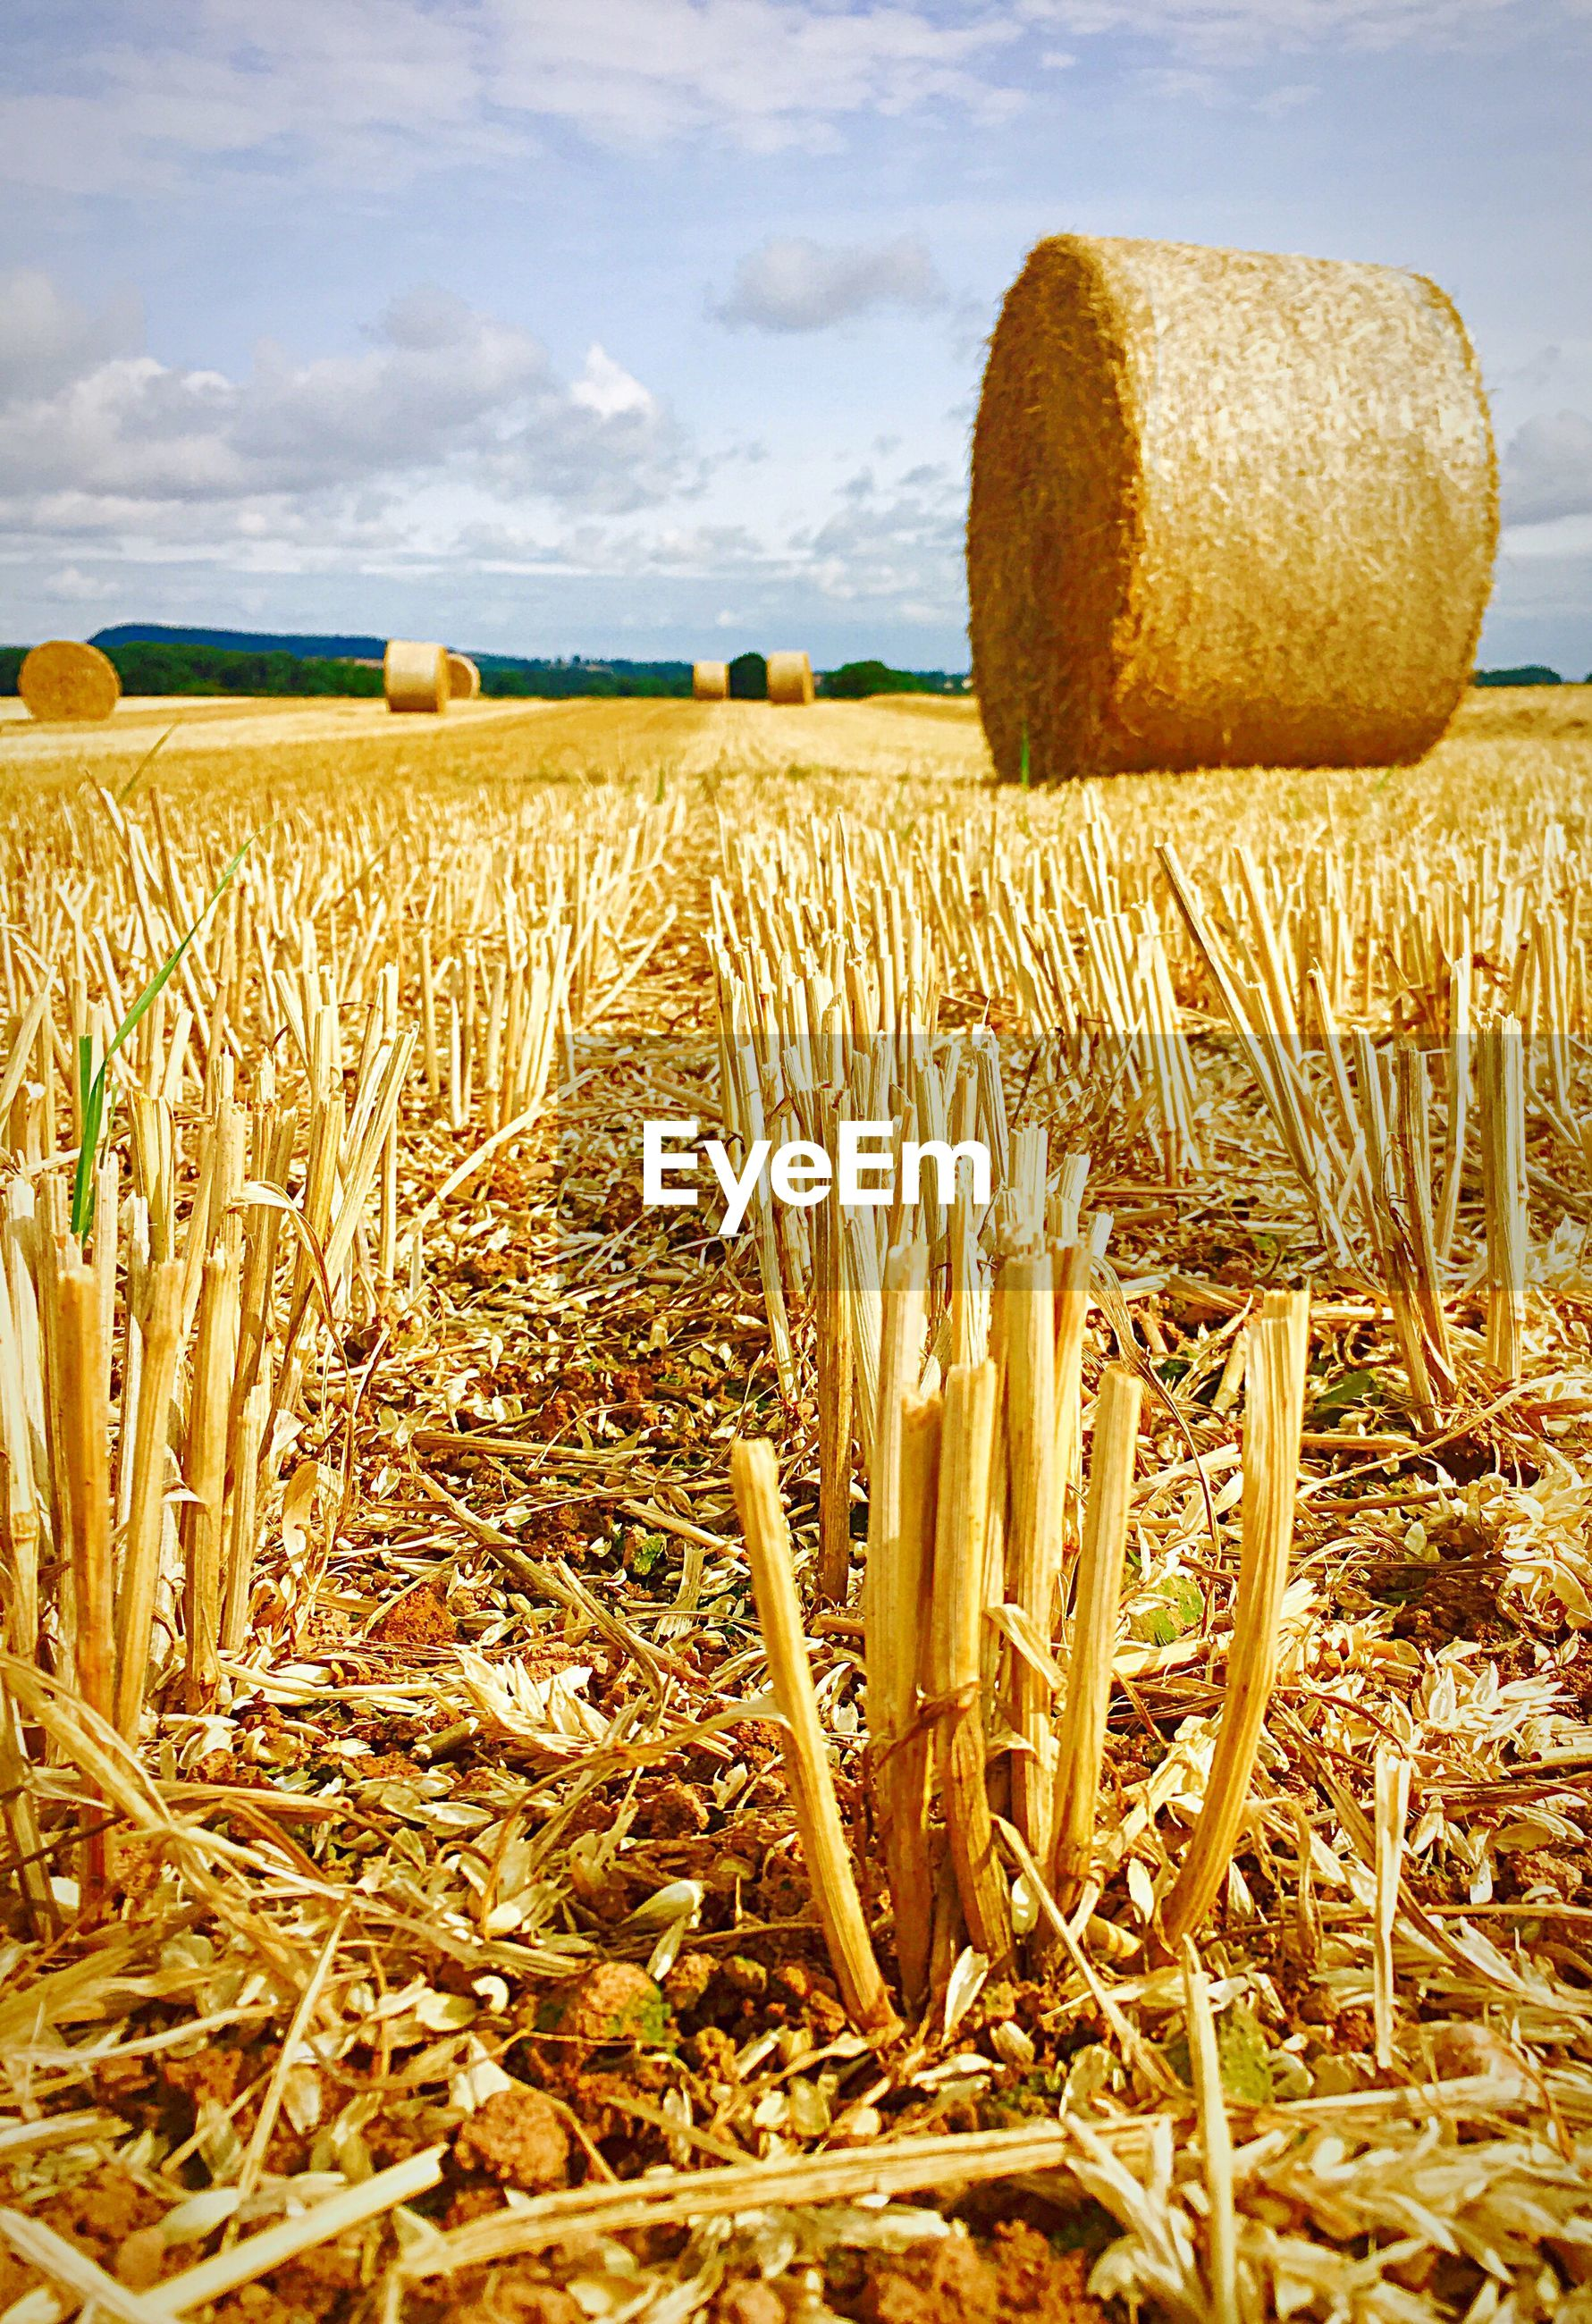 CLOSE-UP OF HAY BALES ON FIELD